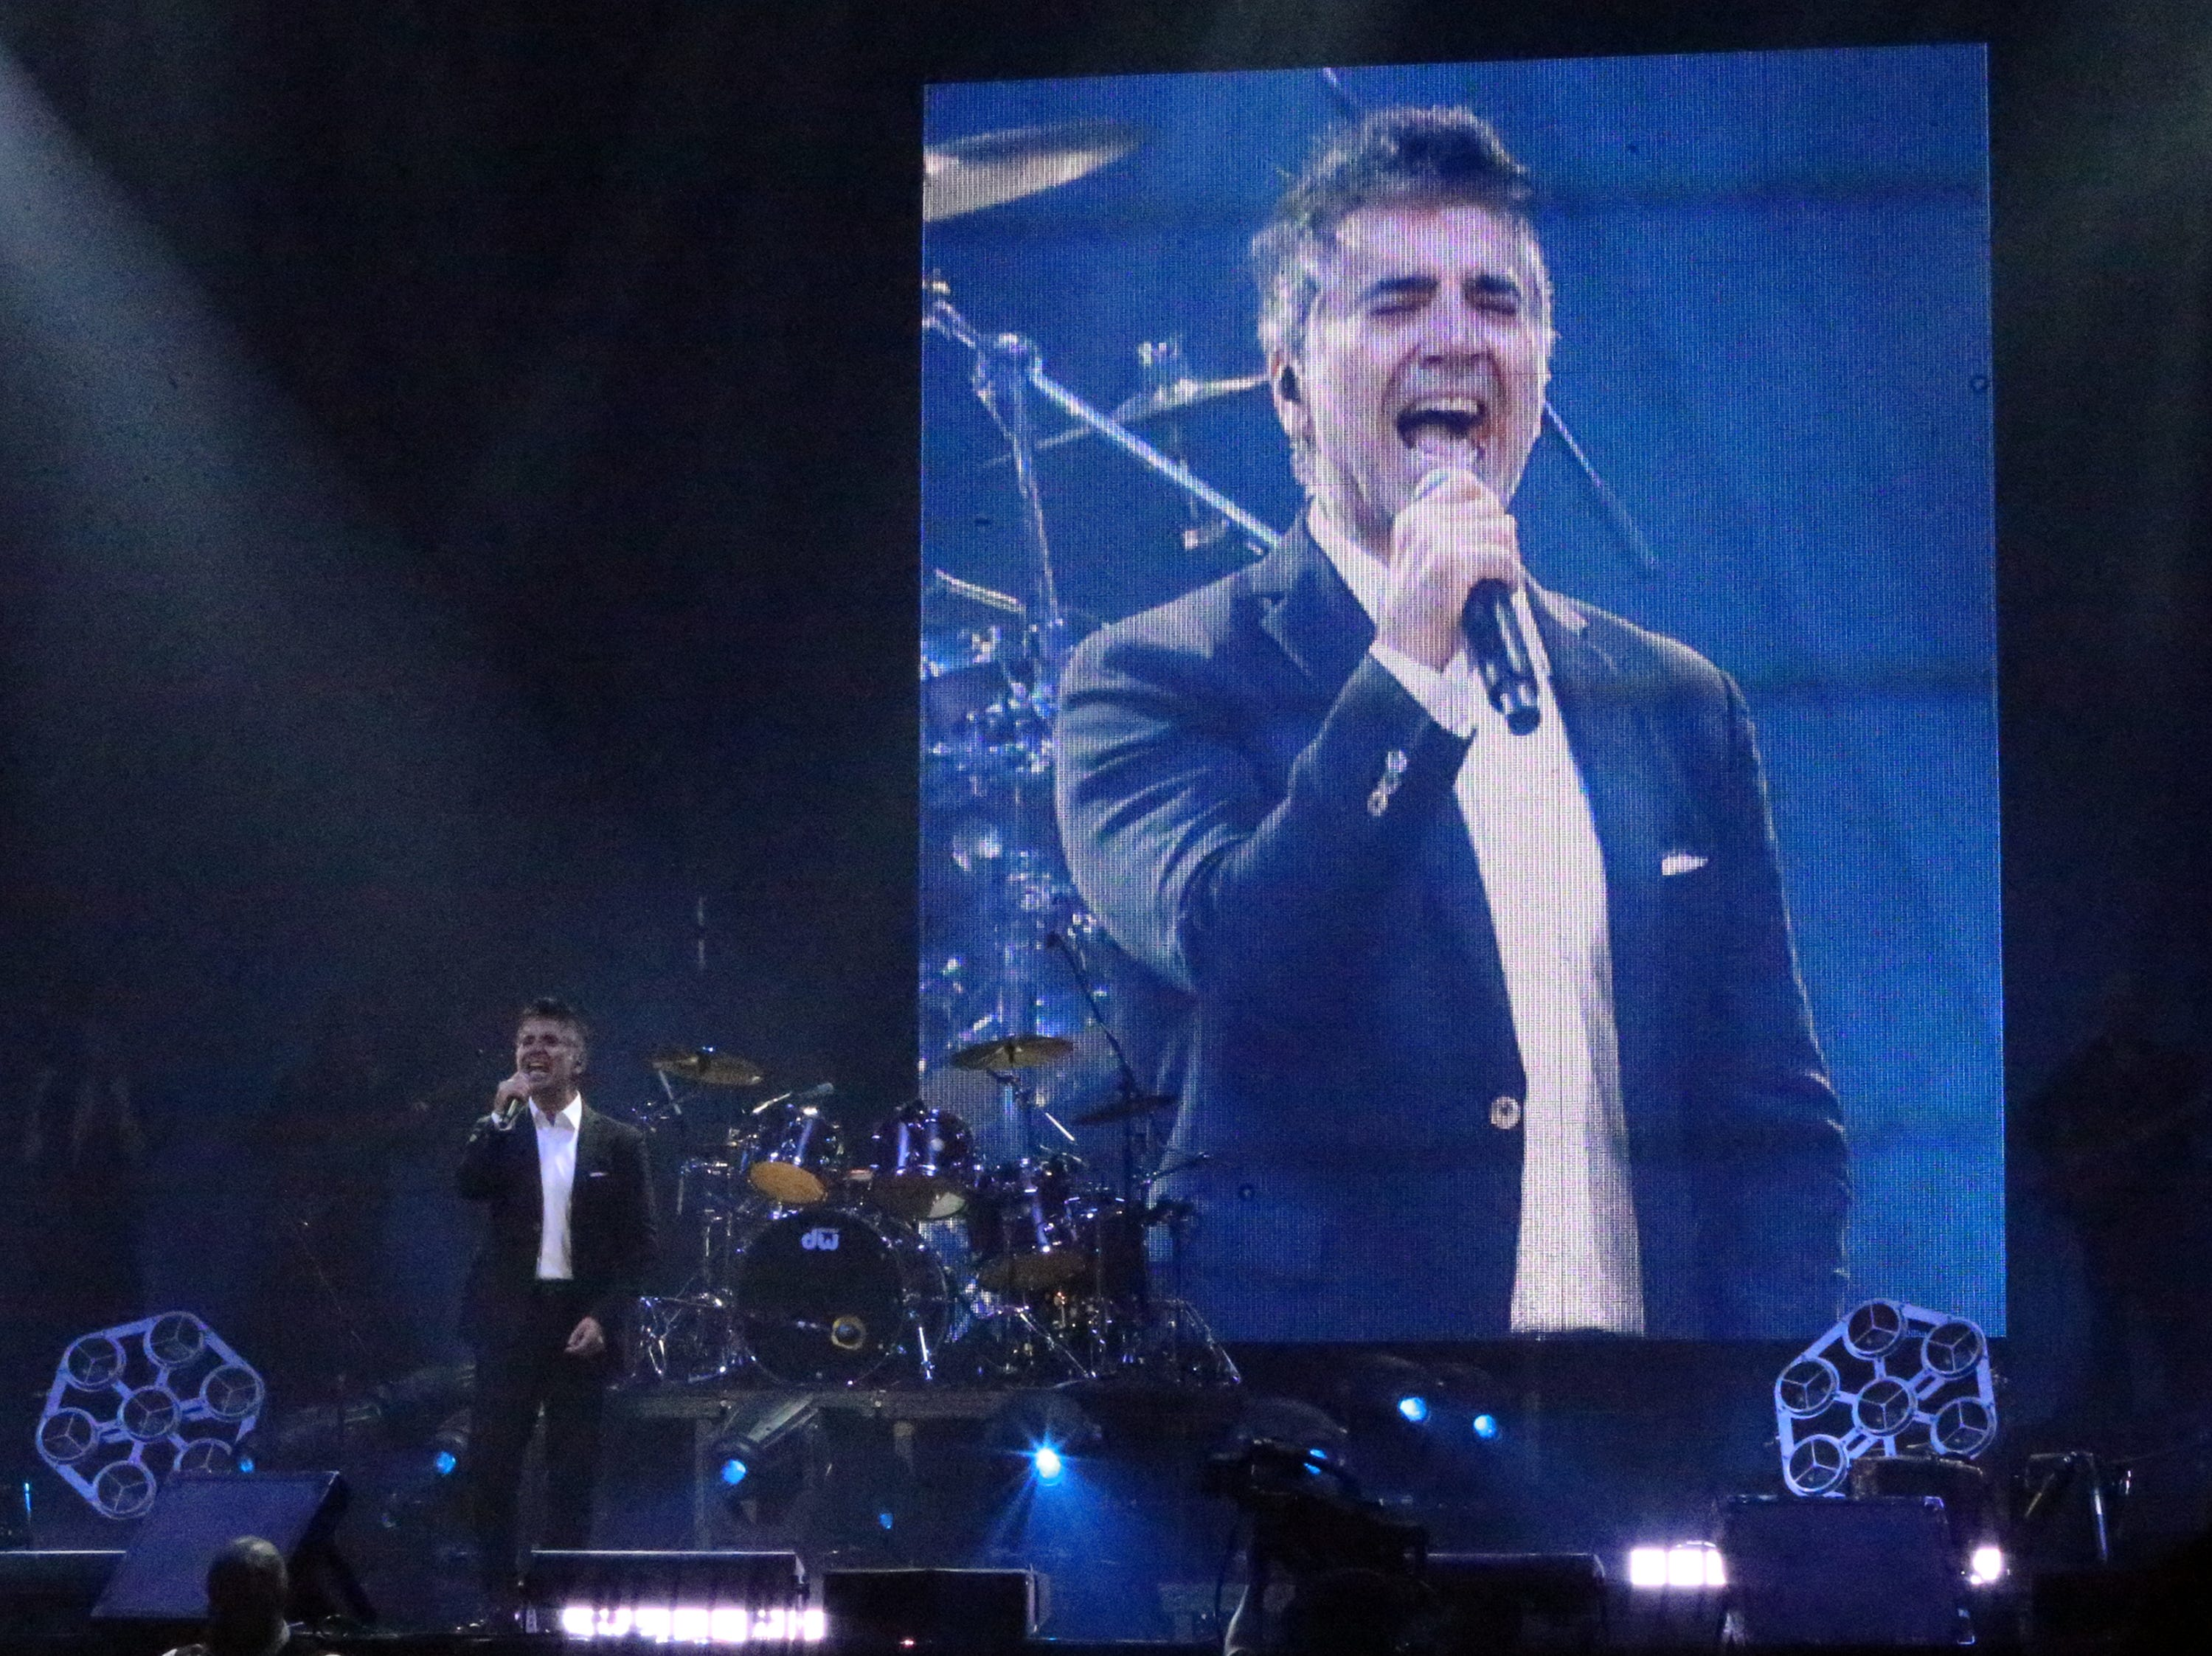 Latin superstar Alejandro Fernandez performs Saturday night in the Don Haskins Center. Fernandez, son of famed Ranchero singer Vicente Fernandez, has sold more than 30 million albums worldwide. He has received two Latin Grammy Awards and, like Los Tigres del Norte, a star on the Hollywood Walk of Fame.